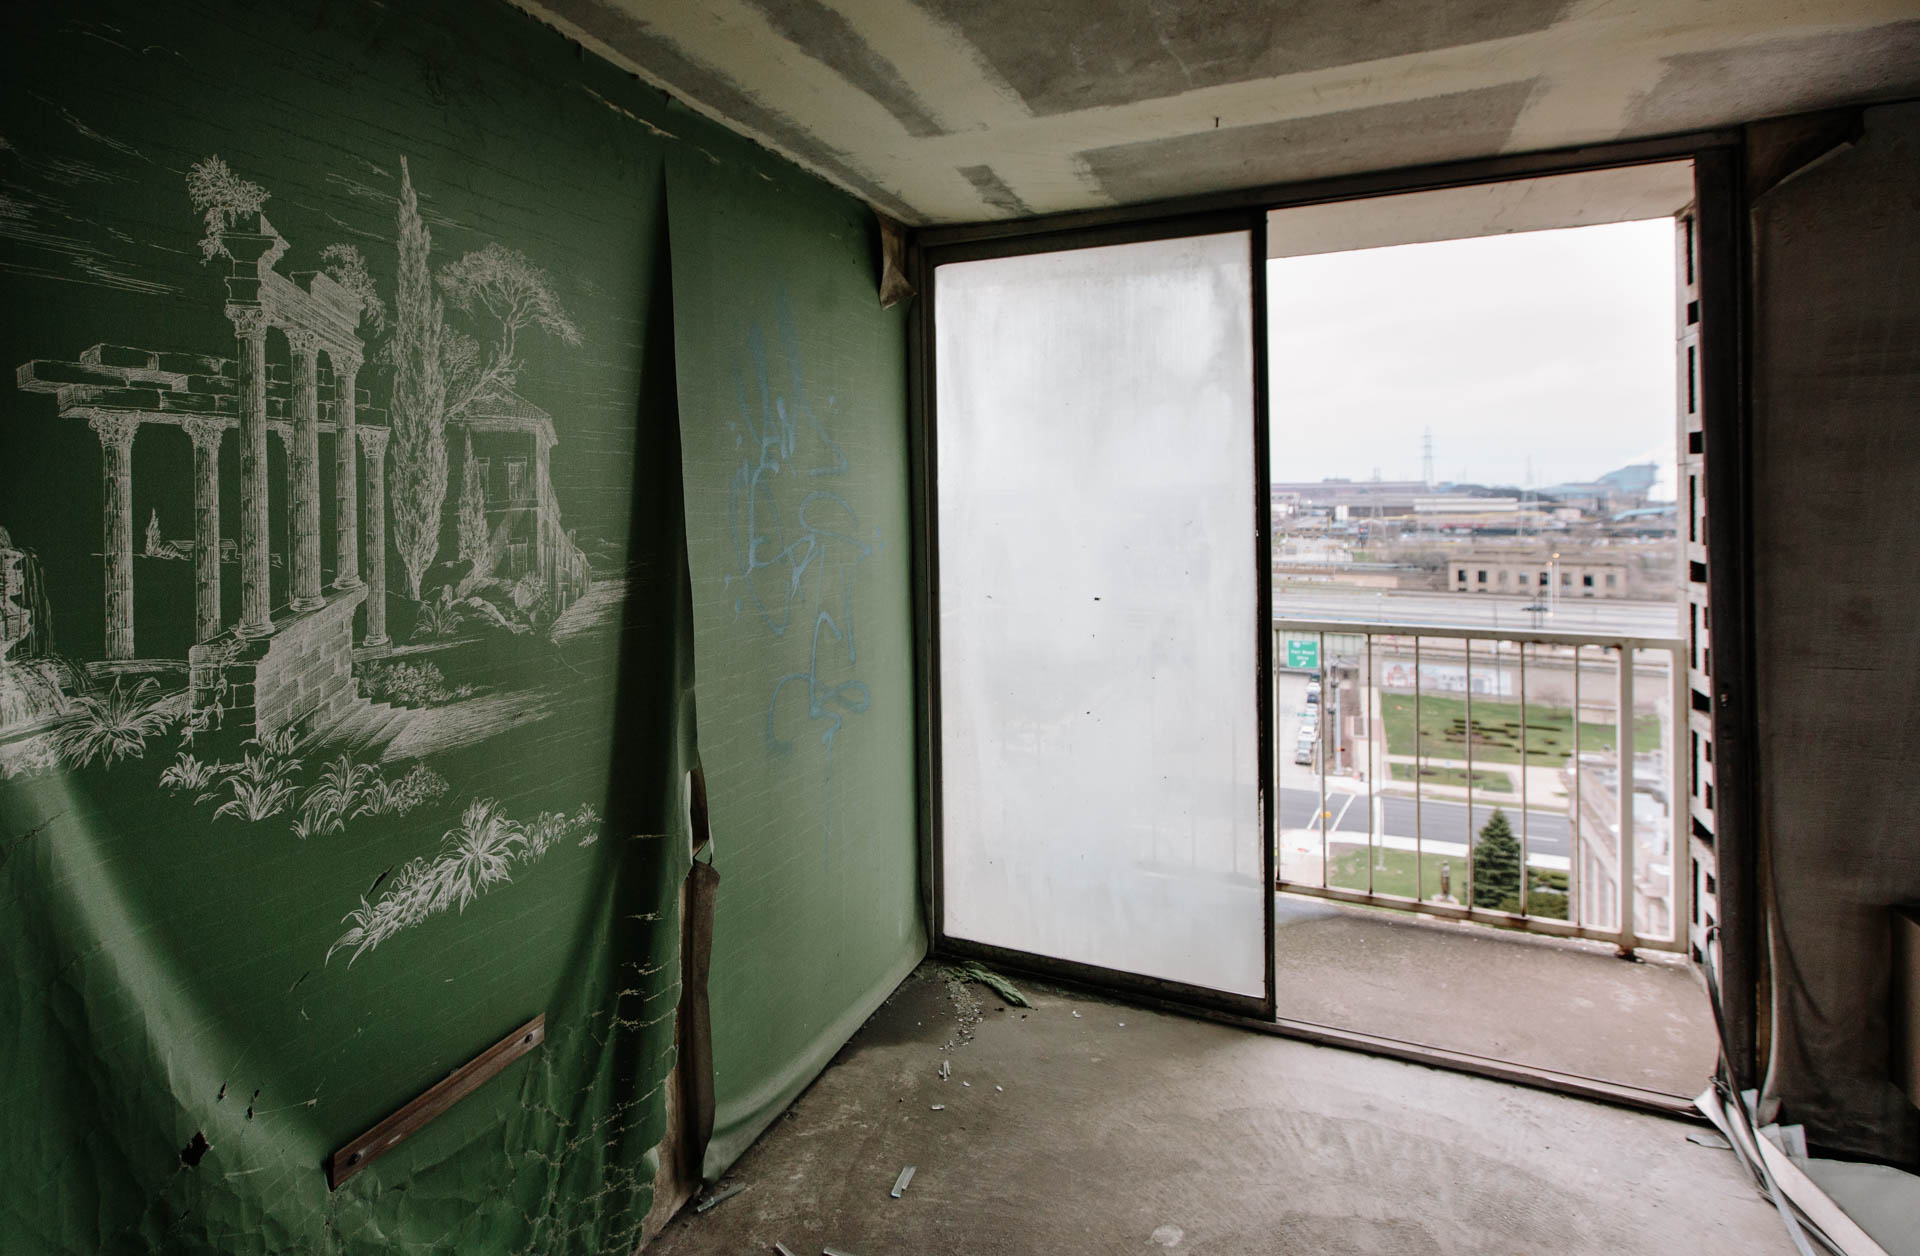 green-greek-wall-paper-abandoned-gary-hotel-room